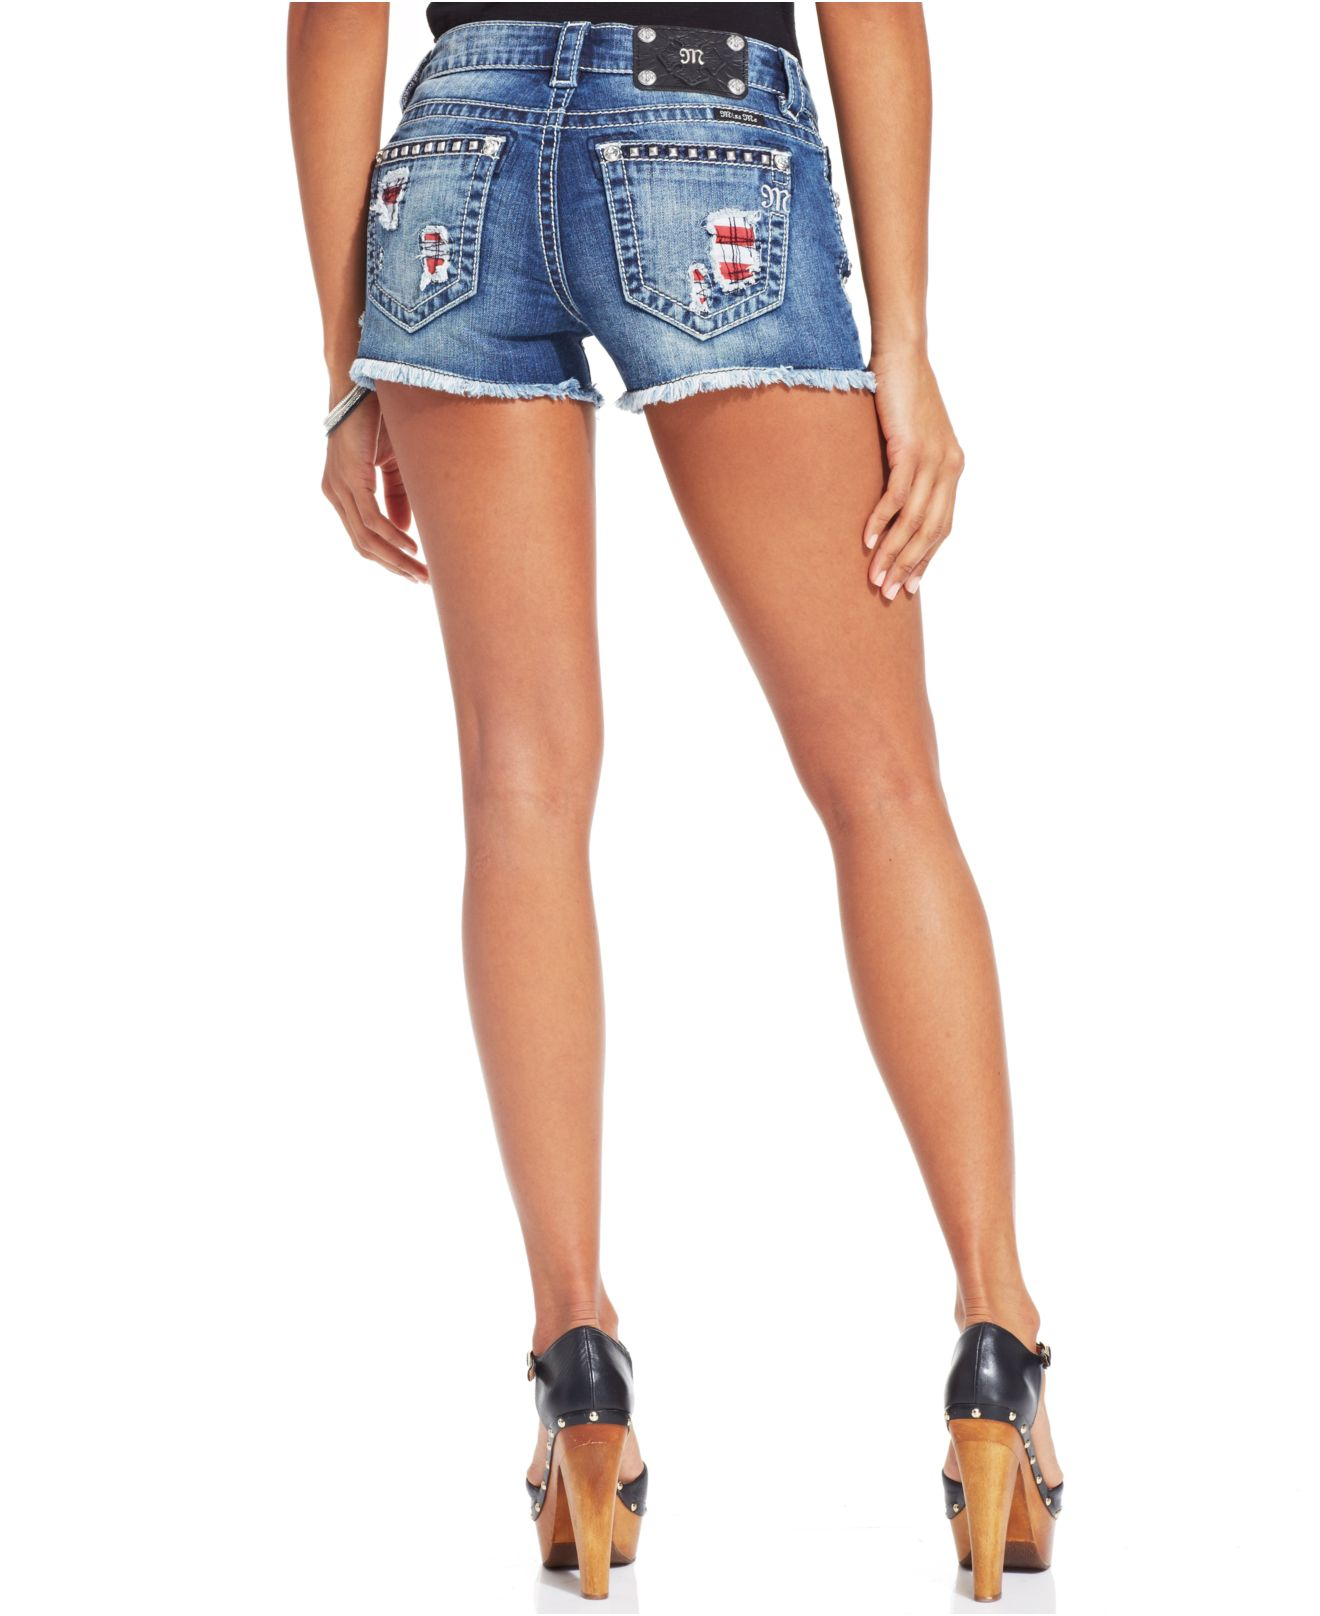 Lyst - Miss me Studded Flag-Embroidered Denim Shorts in Blue